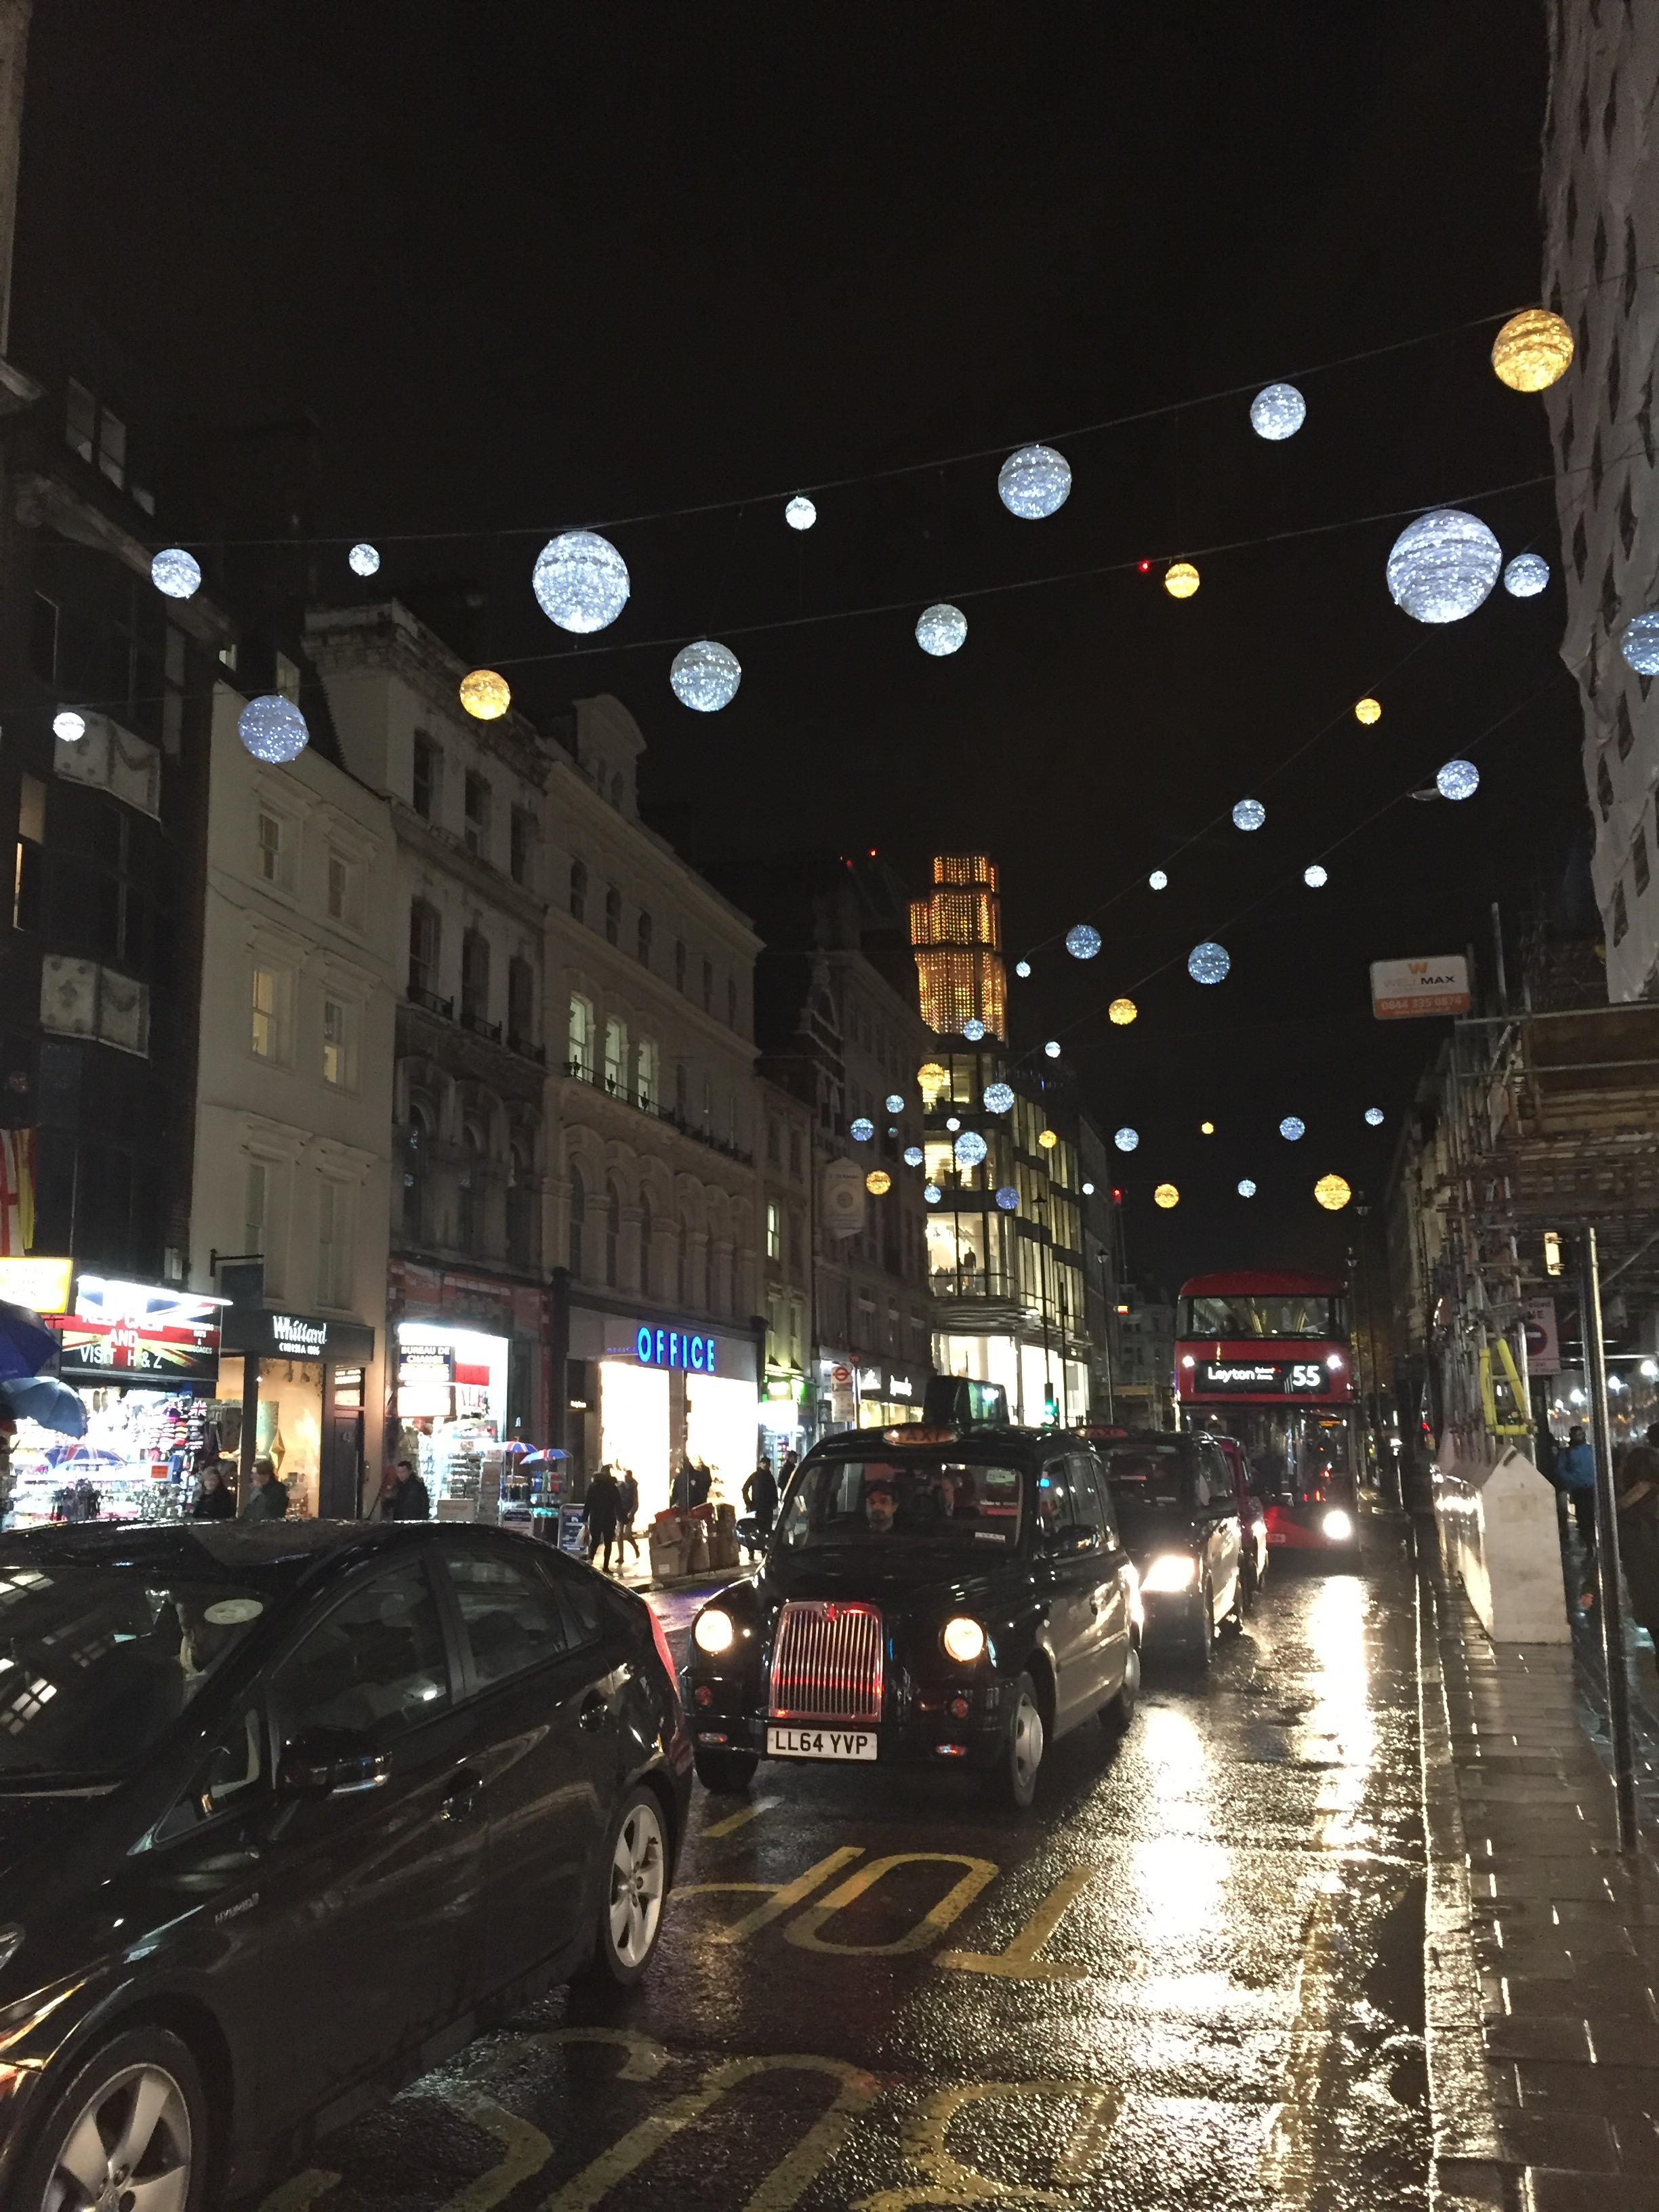 Oxford street, decorated for the holidays. Also notice the iconic London cab and double decker bus.